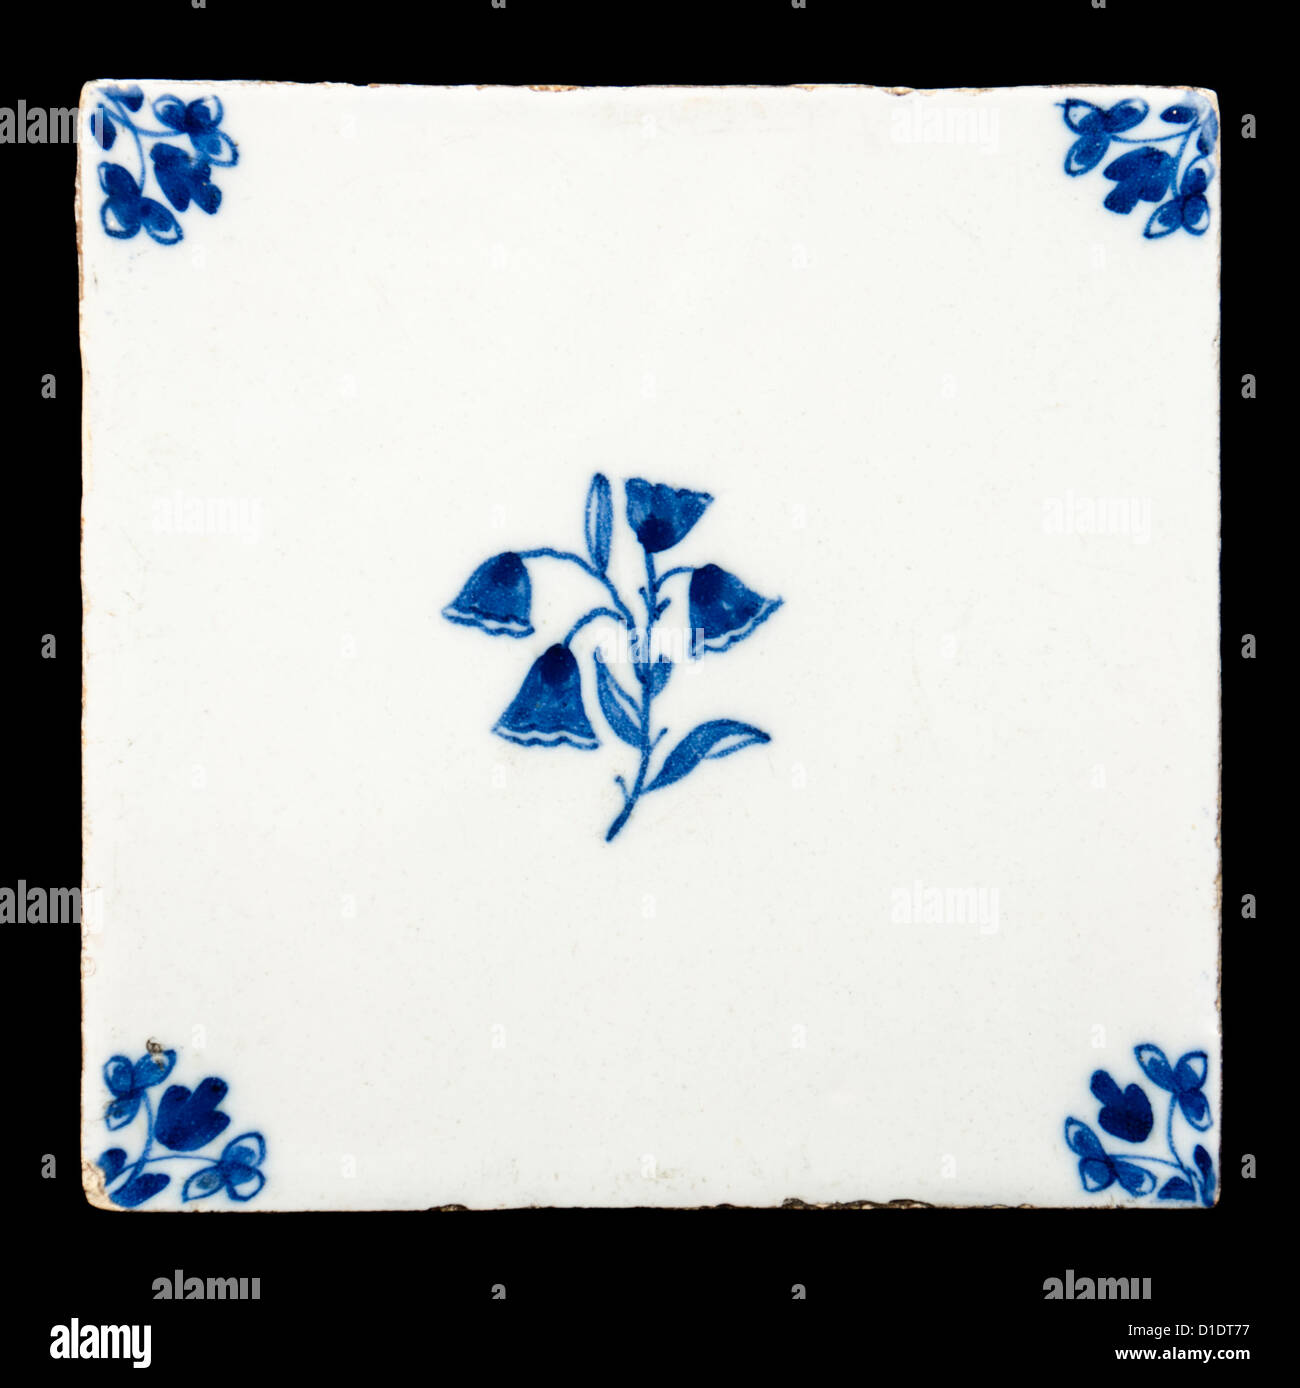 Delft tile stock photos delft tile stock images alamy antique delft ceramic tile stock image dailygadgetfo Image collections